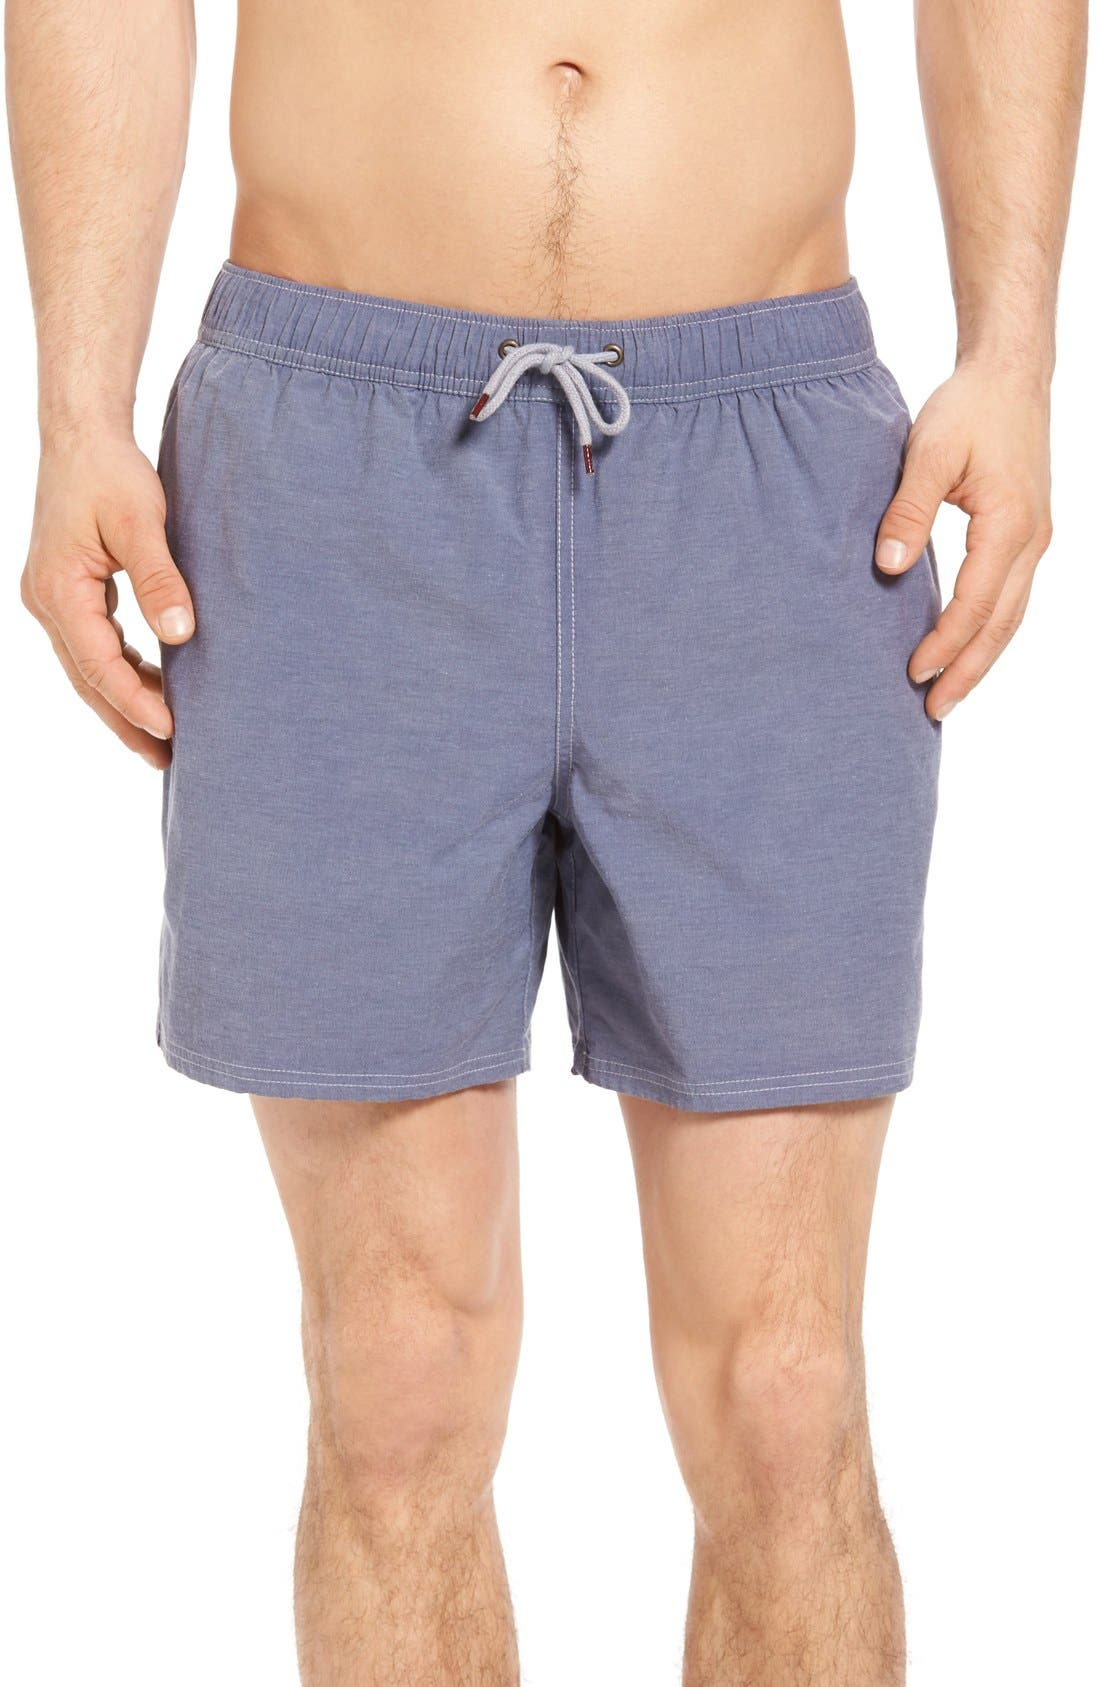 Waikiki Board Shorts,                         Main,                         color,